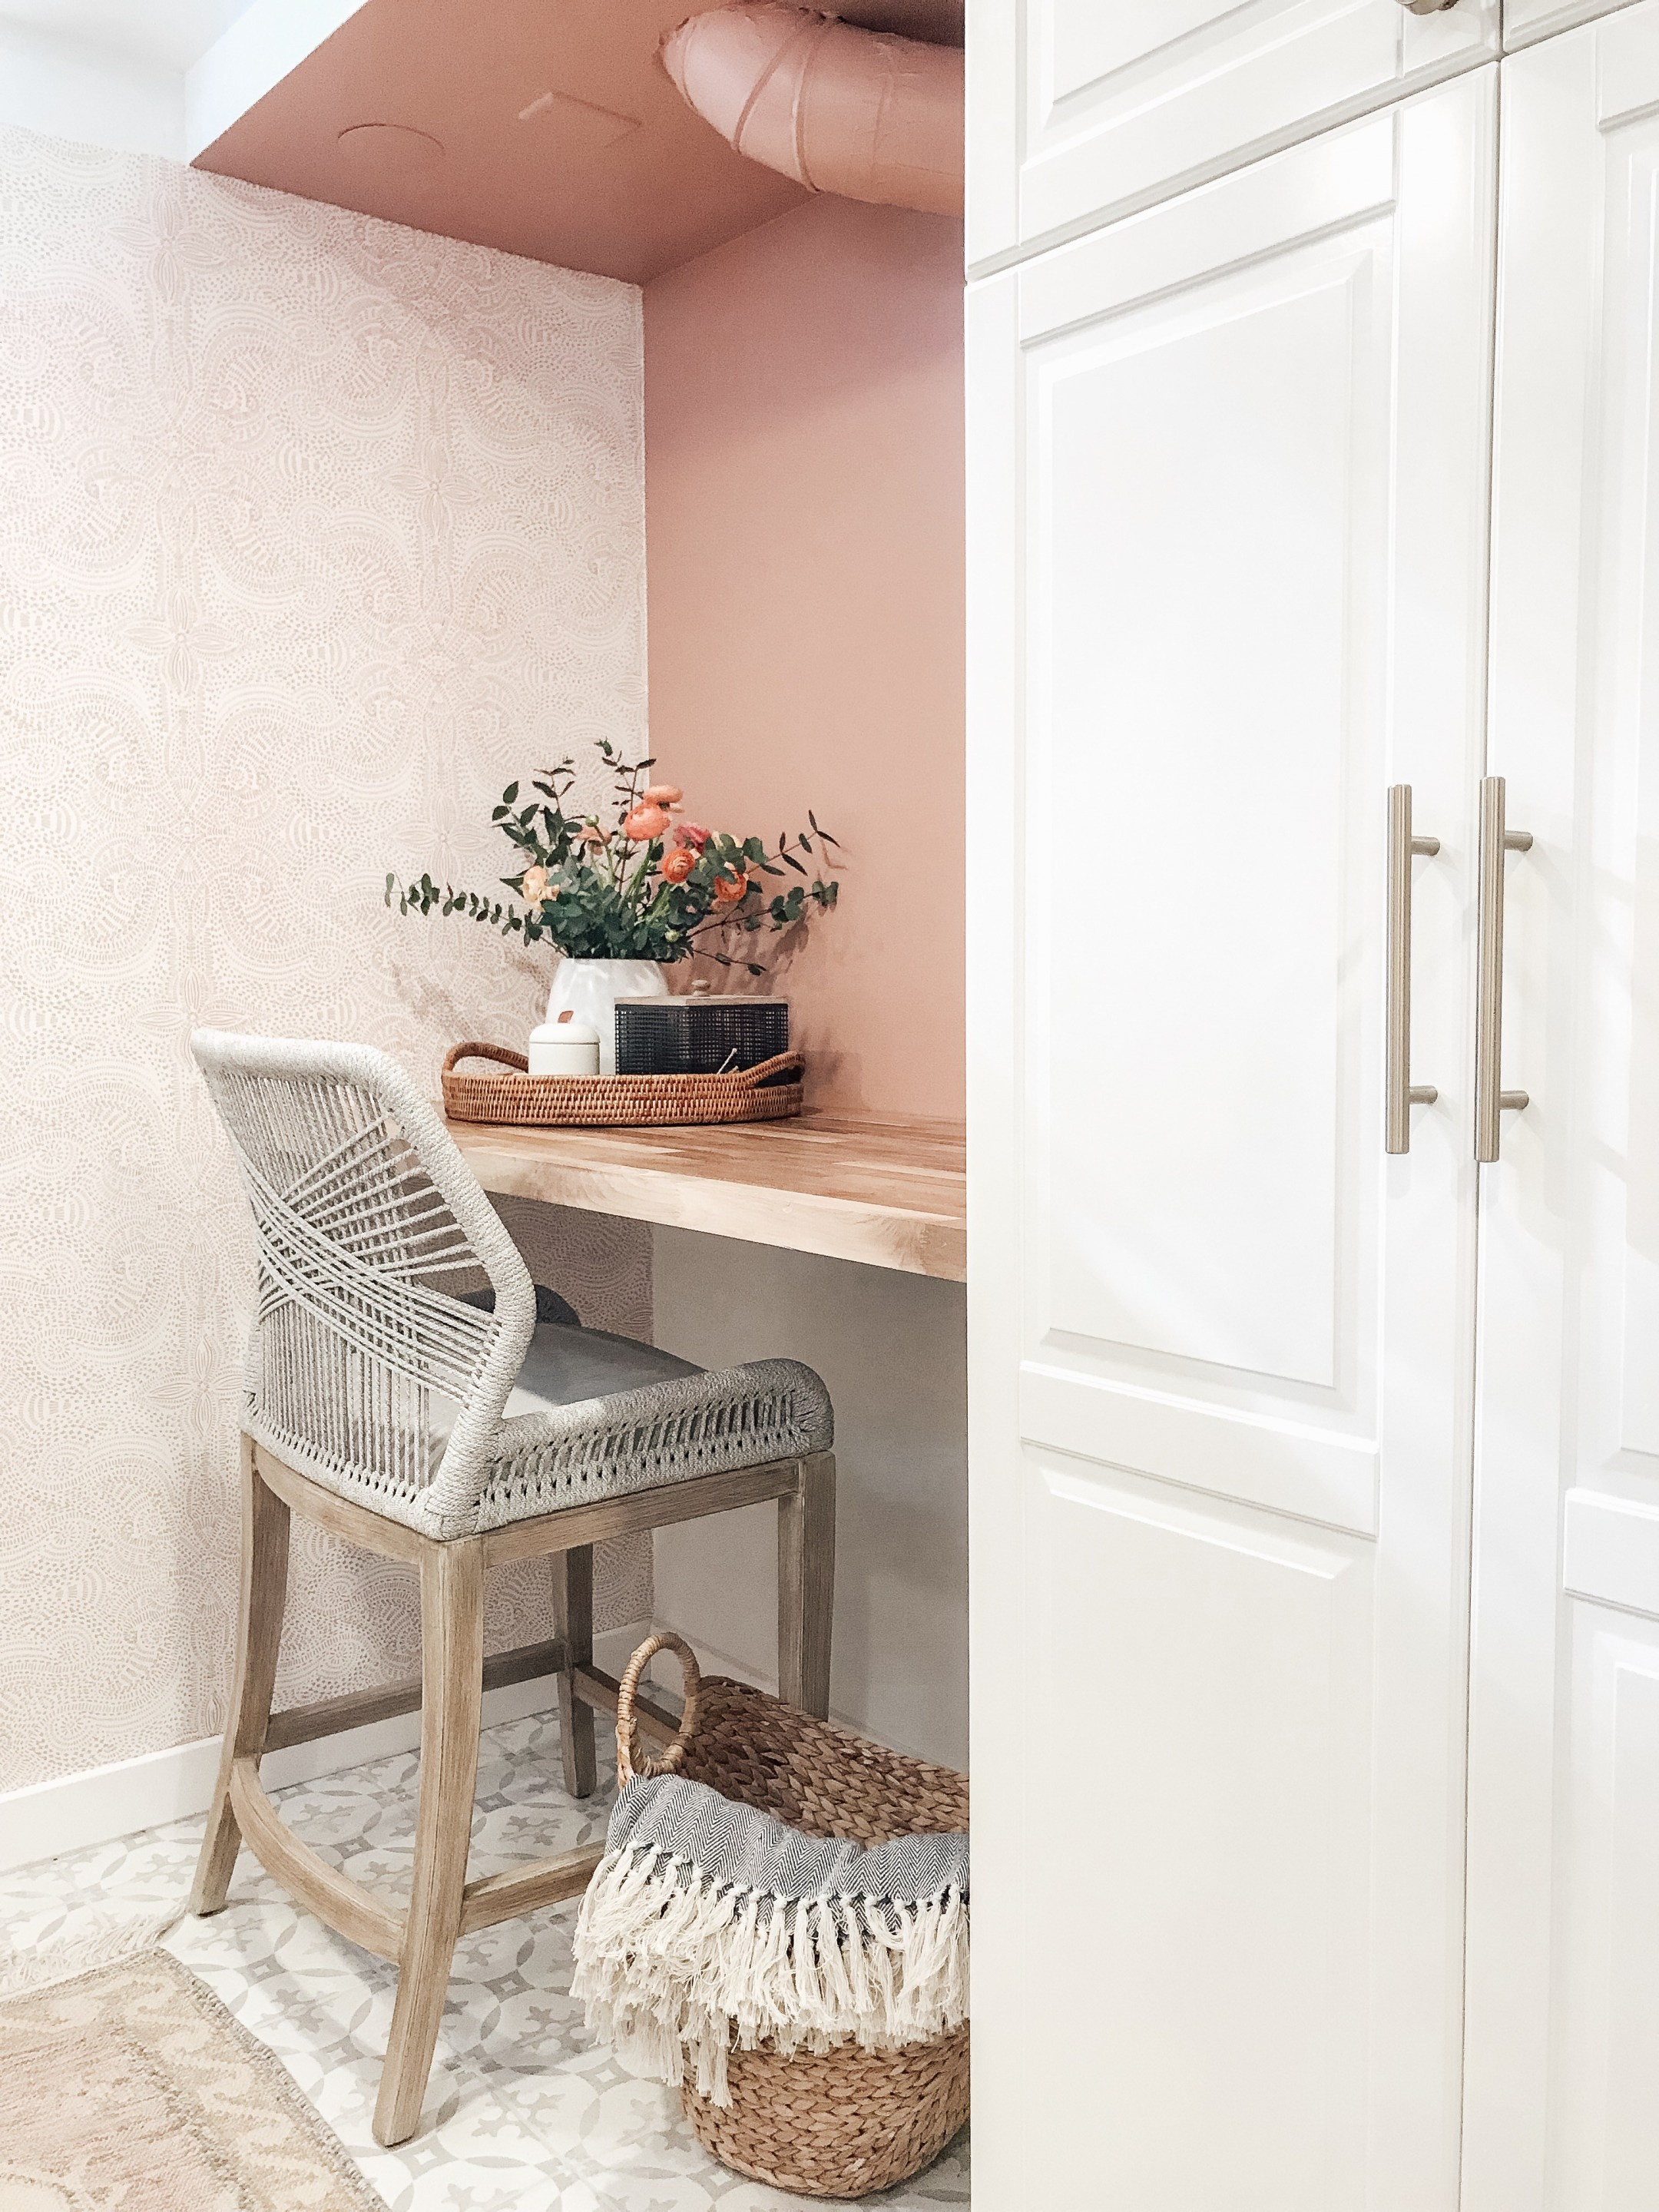 Blush Colored Glasses - Karly is making over her laundry room and I'm loving everything about it so far!! She just found an antique door that is to die forrrr!